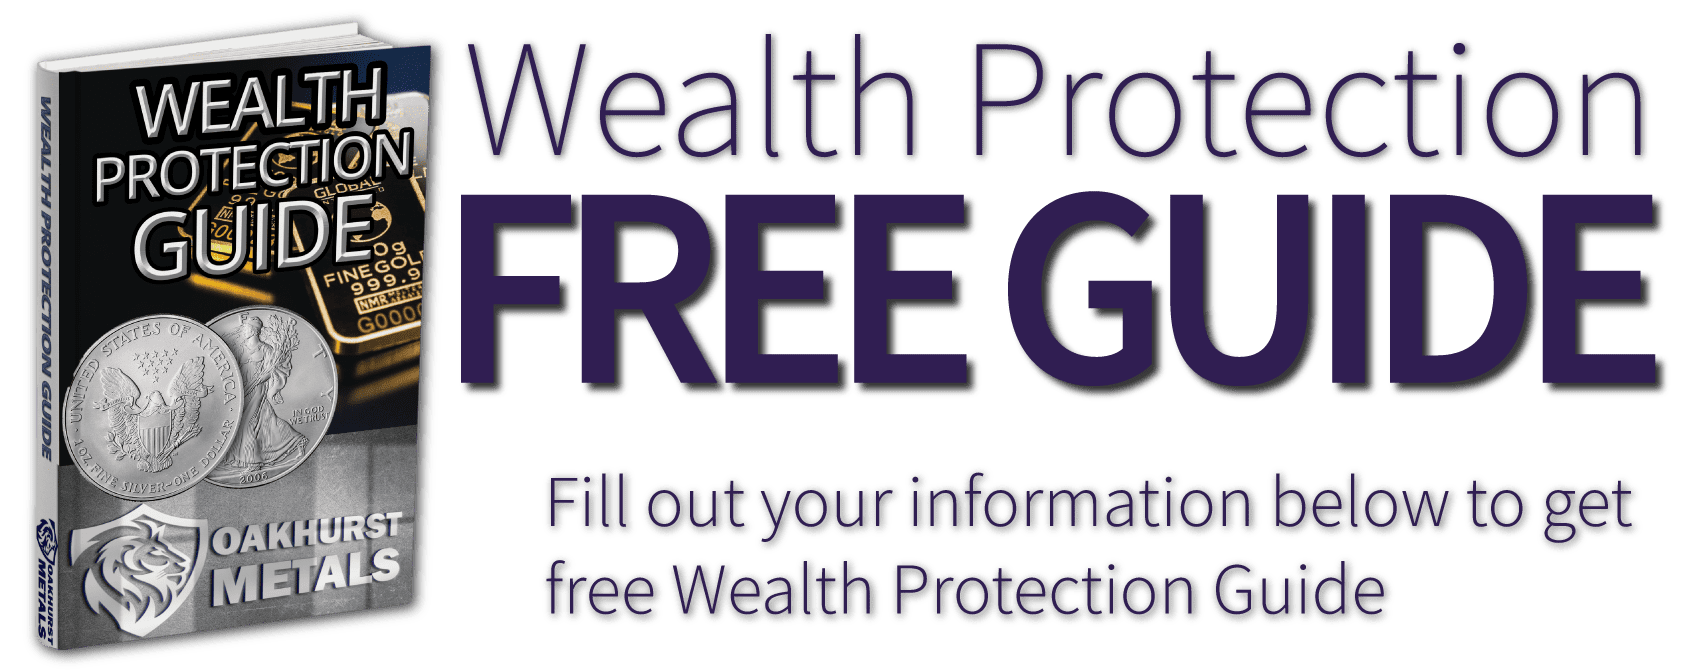 Free Wealth Protection Guide from Oakhurst Metals! Fill out your information below to receive our free wealth protection guide.